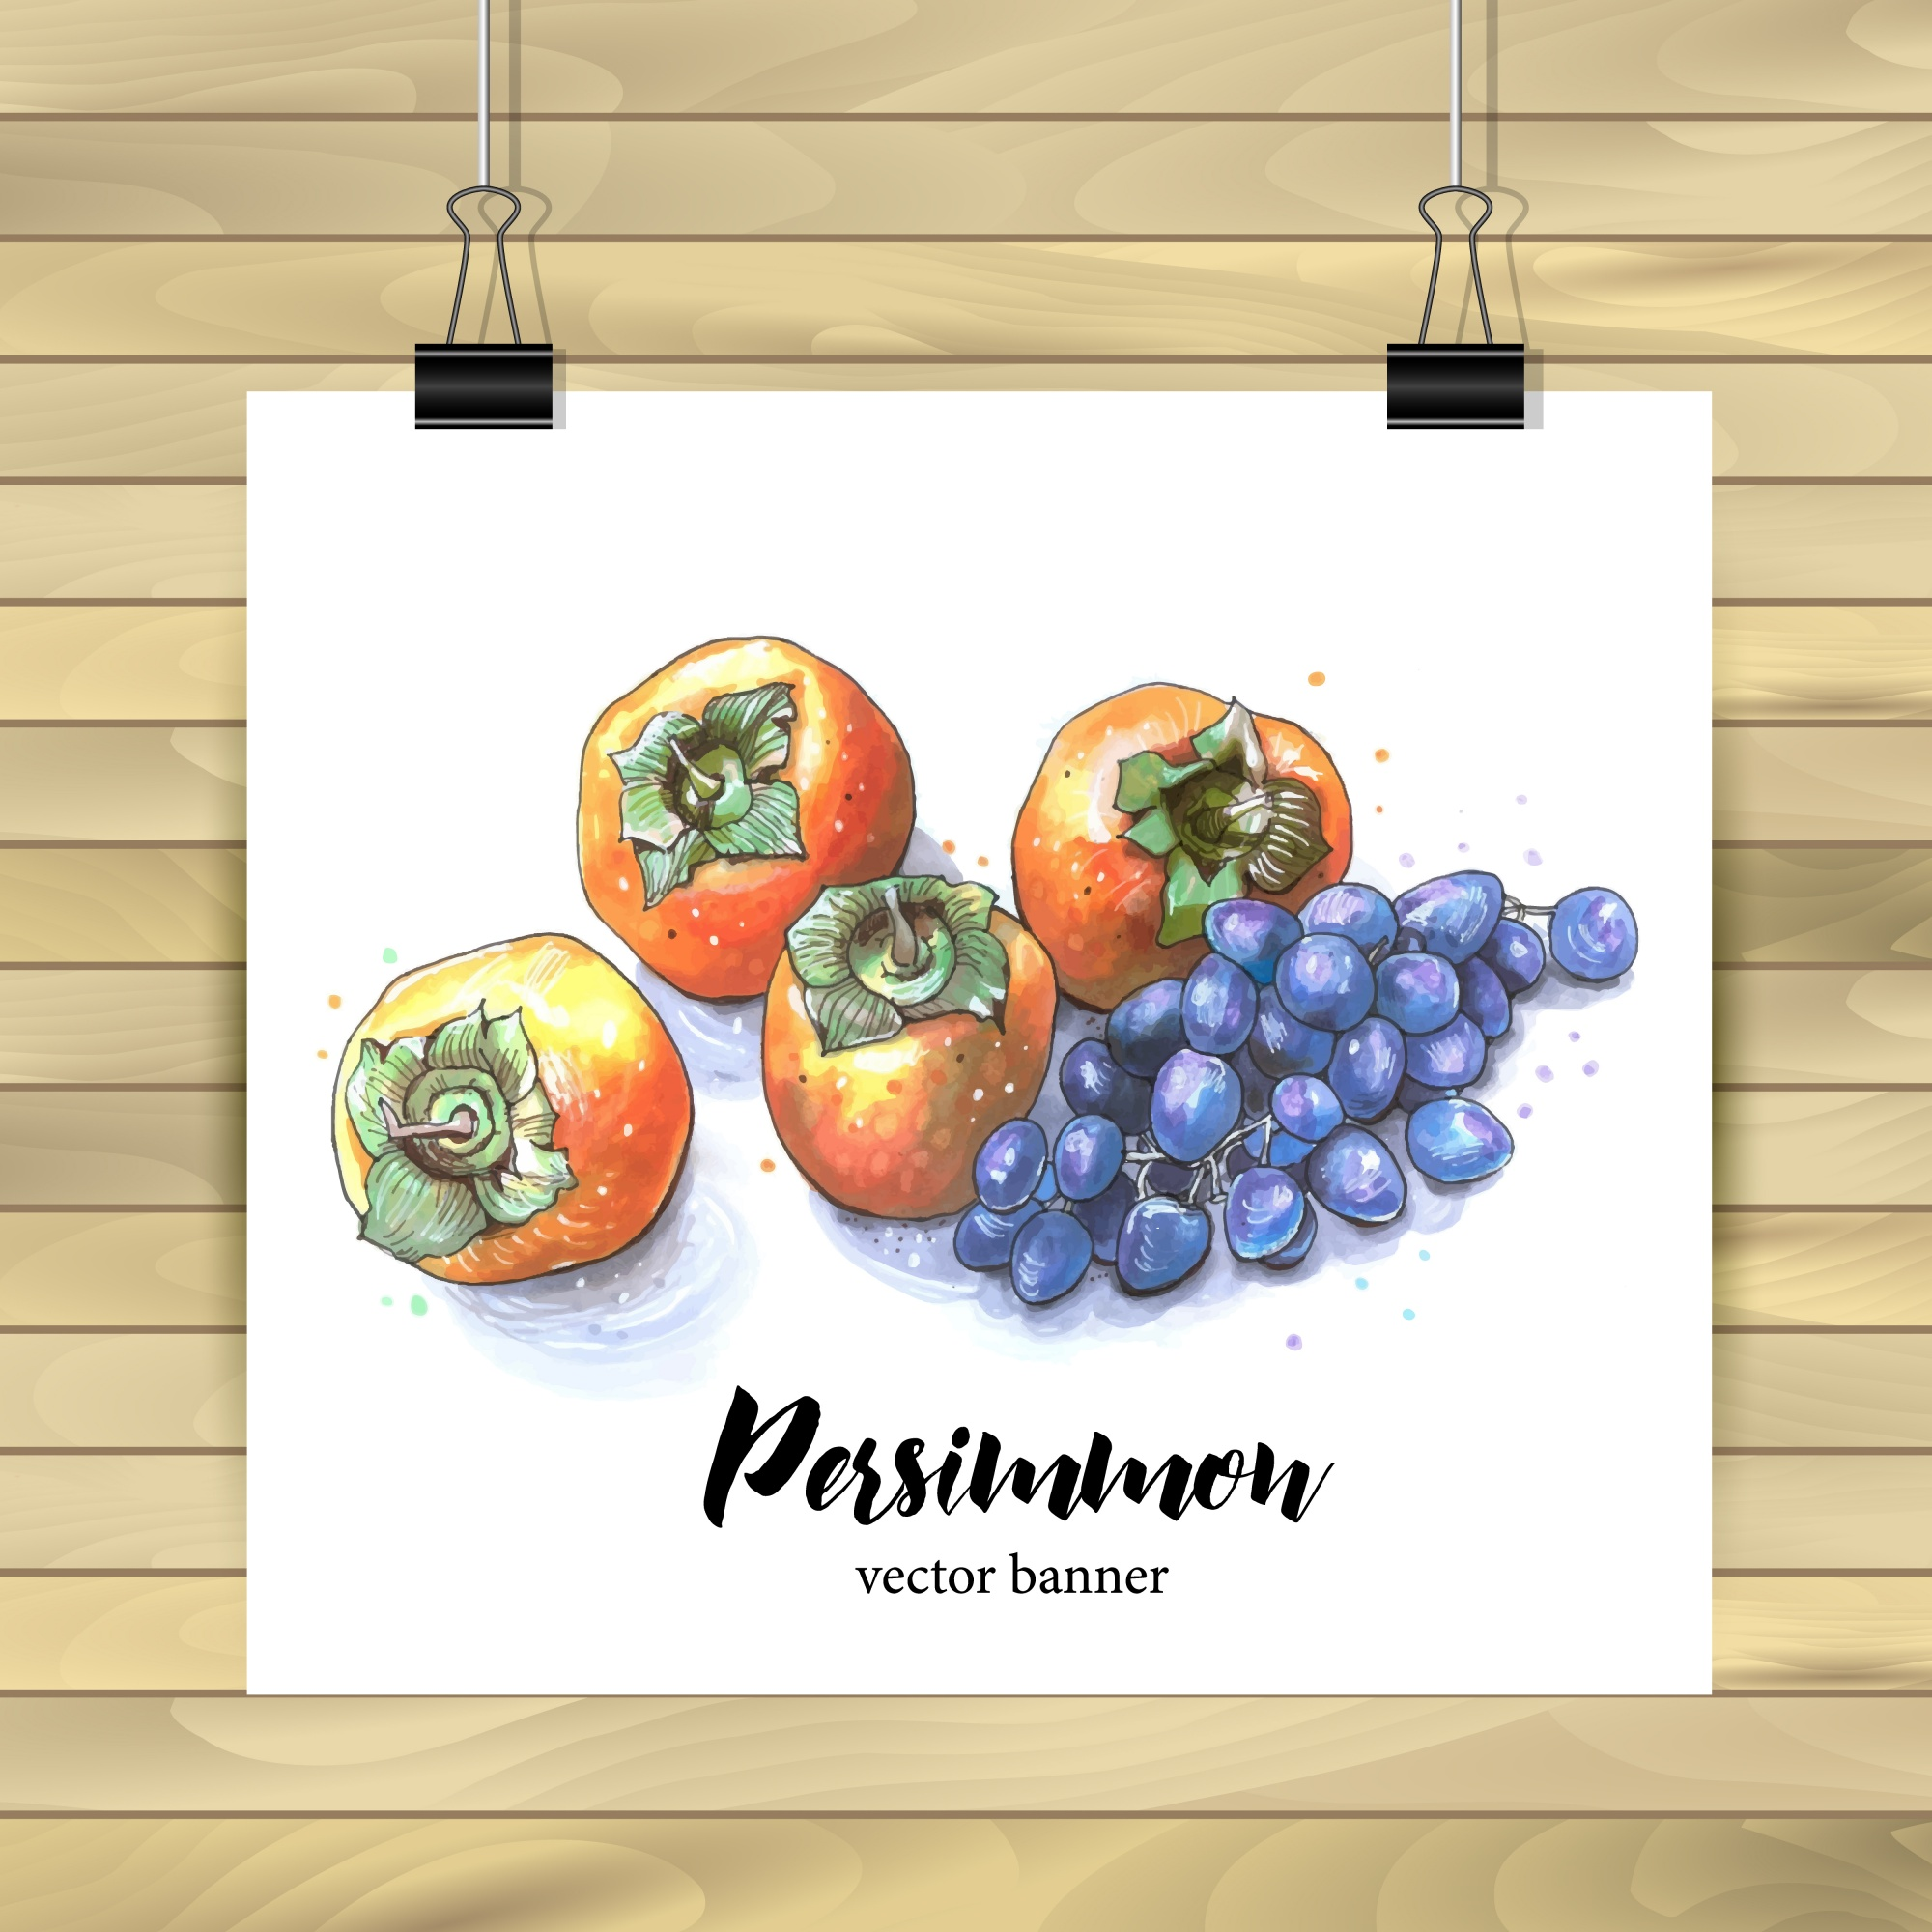 Poster decoration with persimmons